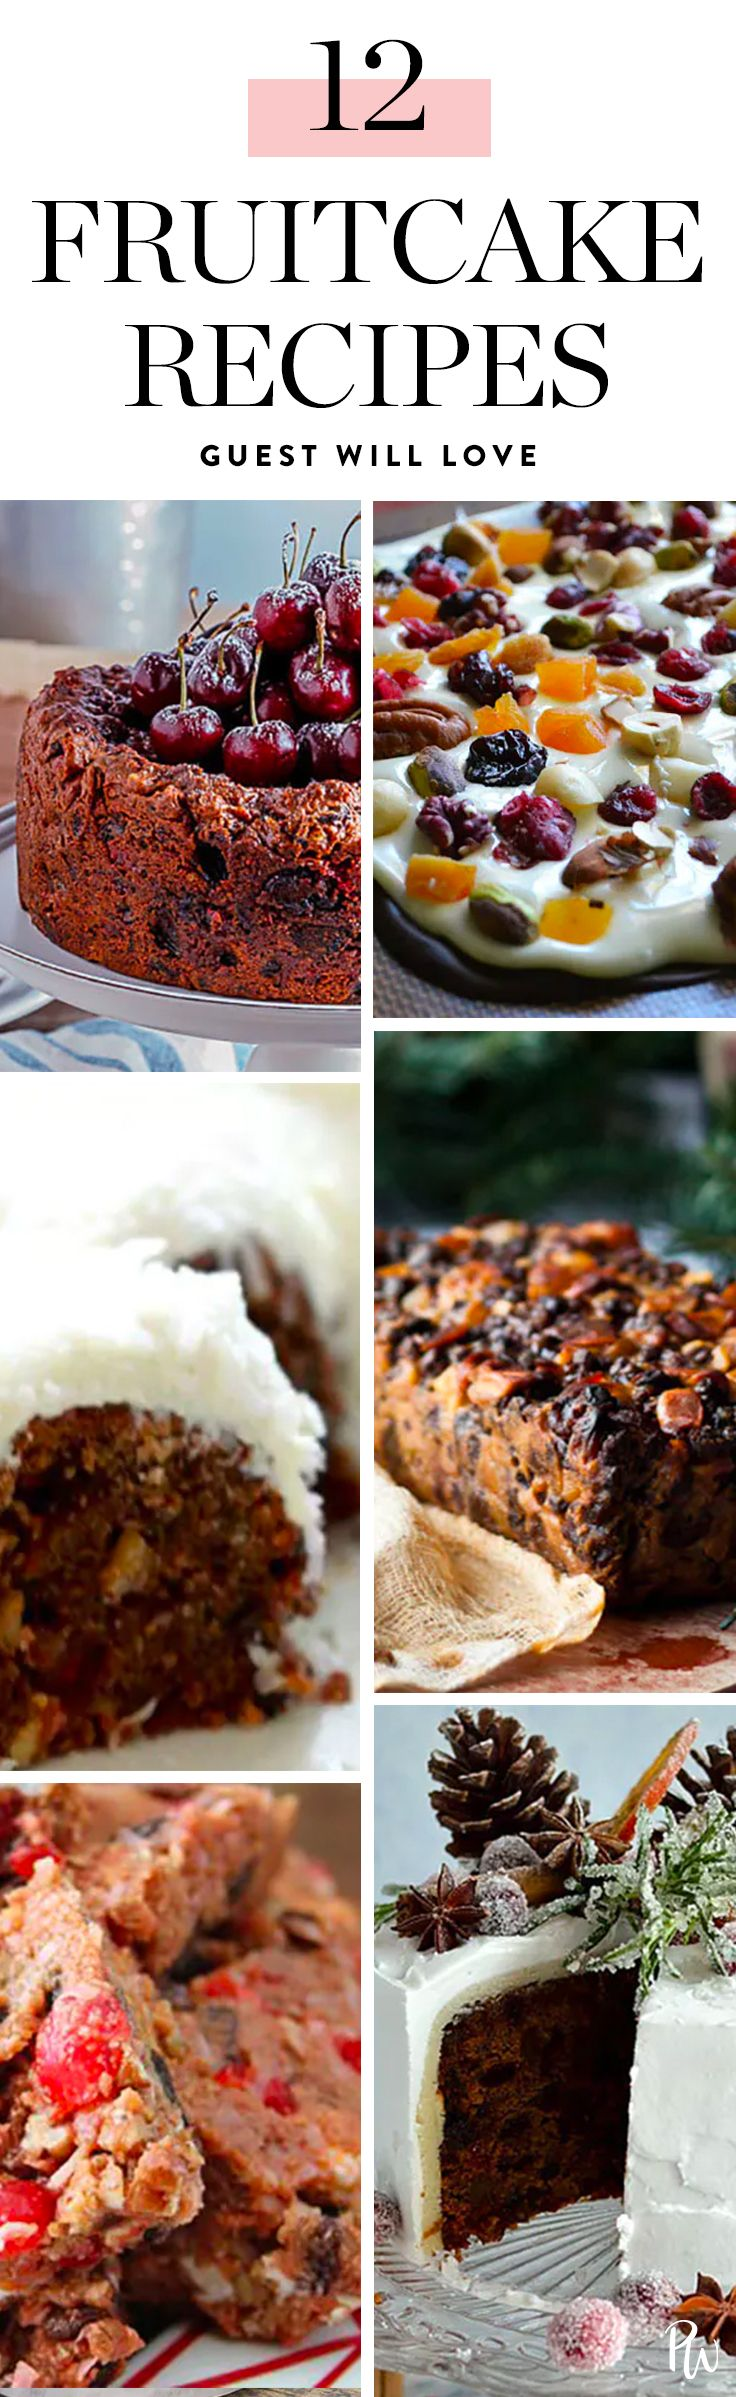 Fruitcake gets a bad rap, but when done right, it's the ultimate holiday breakfast, afternoon treat or festive dessert. Get all the recipes here. #holidayrecipes #holidaydesserts #christmas #fruitcake